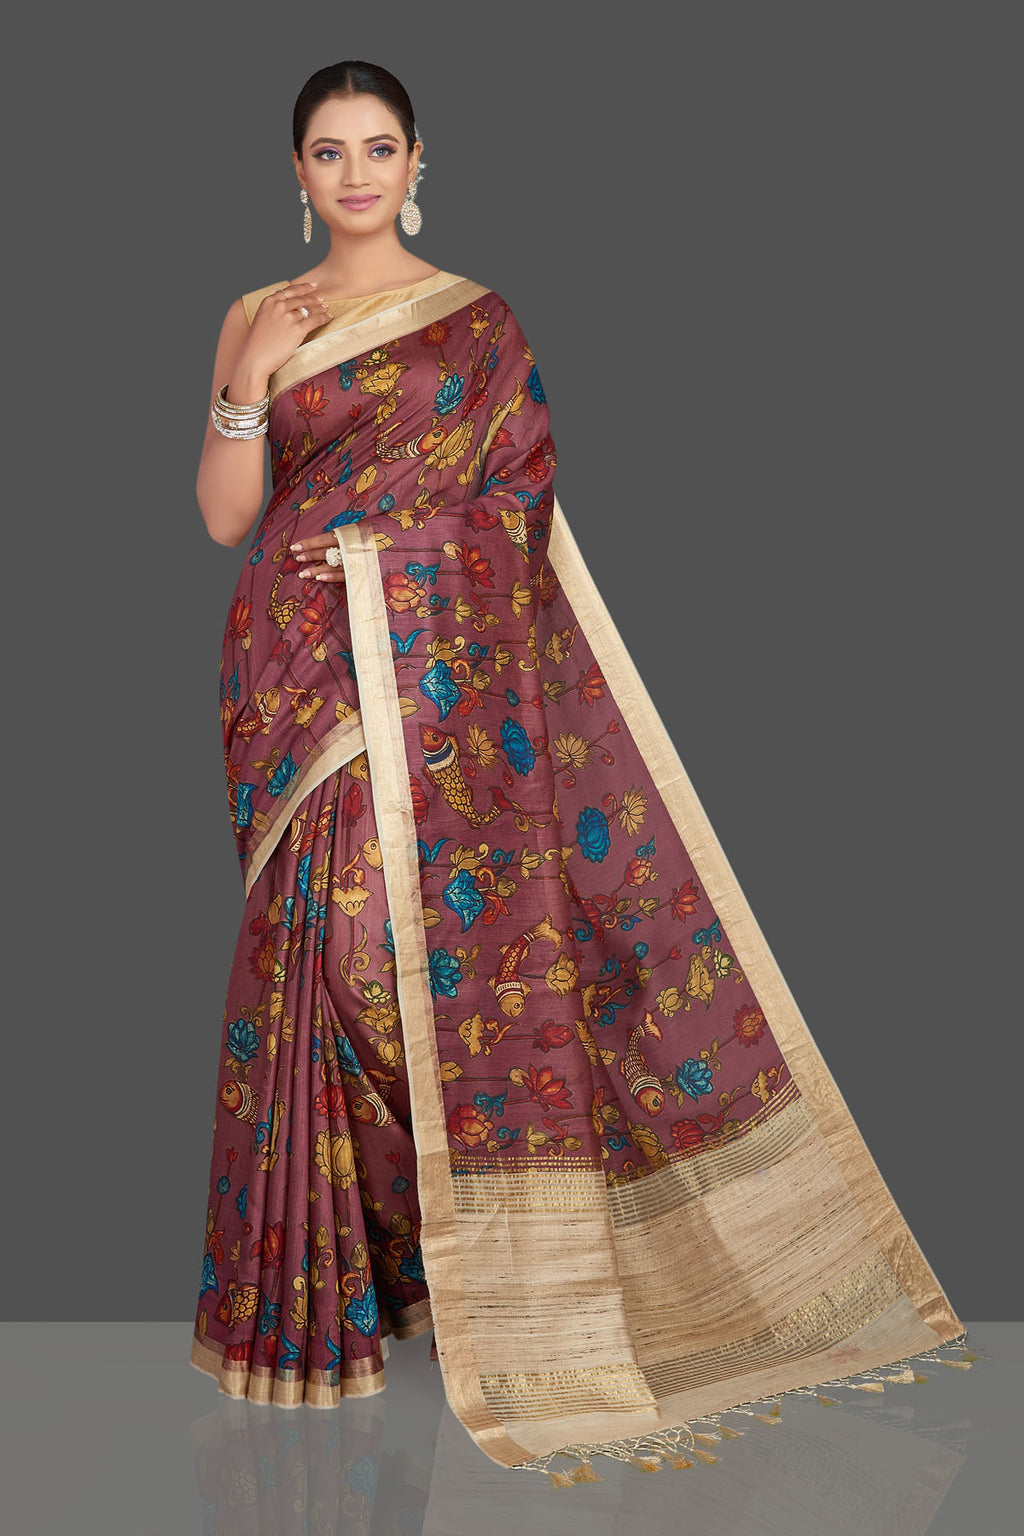 Buy stunning plum printed tussar Banarasi saree online in USA with beige pallu. Look your best on special occasions with stunning Banarasi saris, pure silk saris, tussar sarees, handwoven sarees from Pure Elegance Indian saree store in USA.-full view